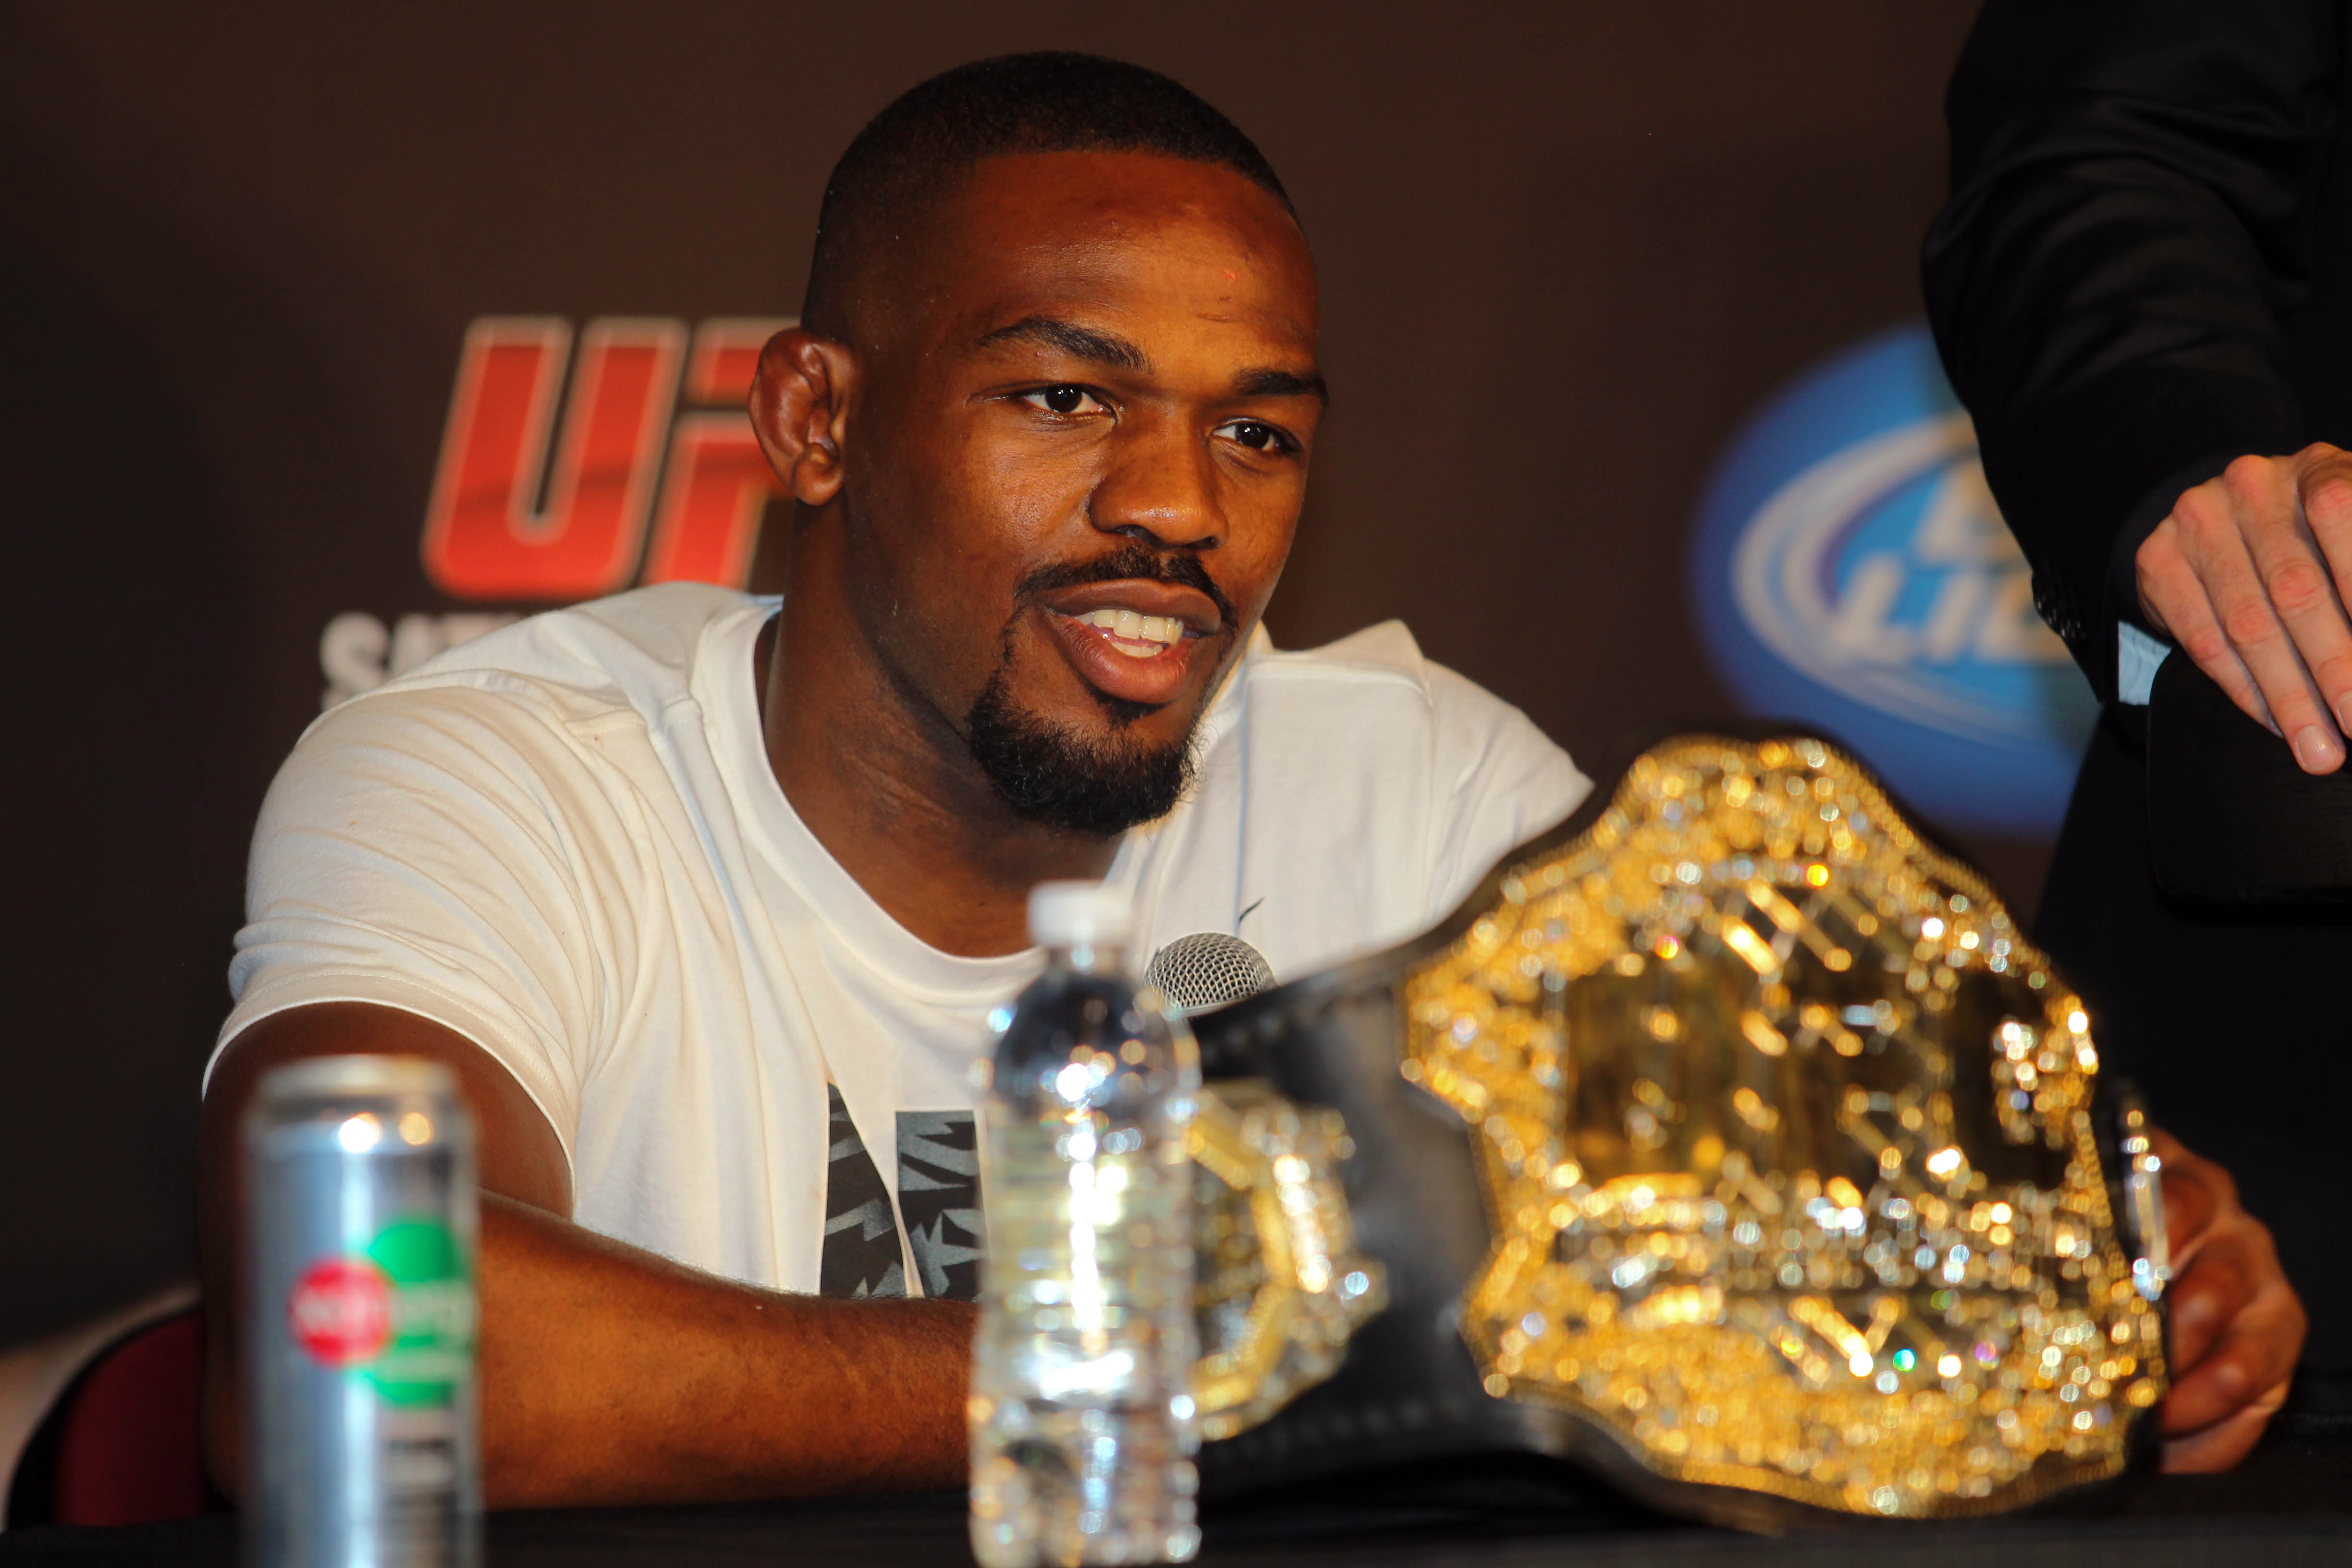 Jon Jones attends a press conference after UFC 159. (USA Today Sports)